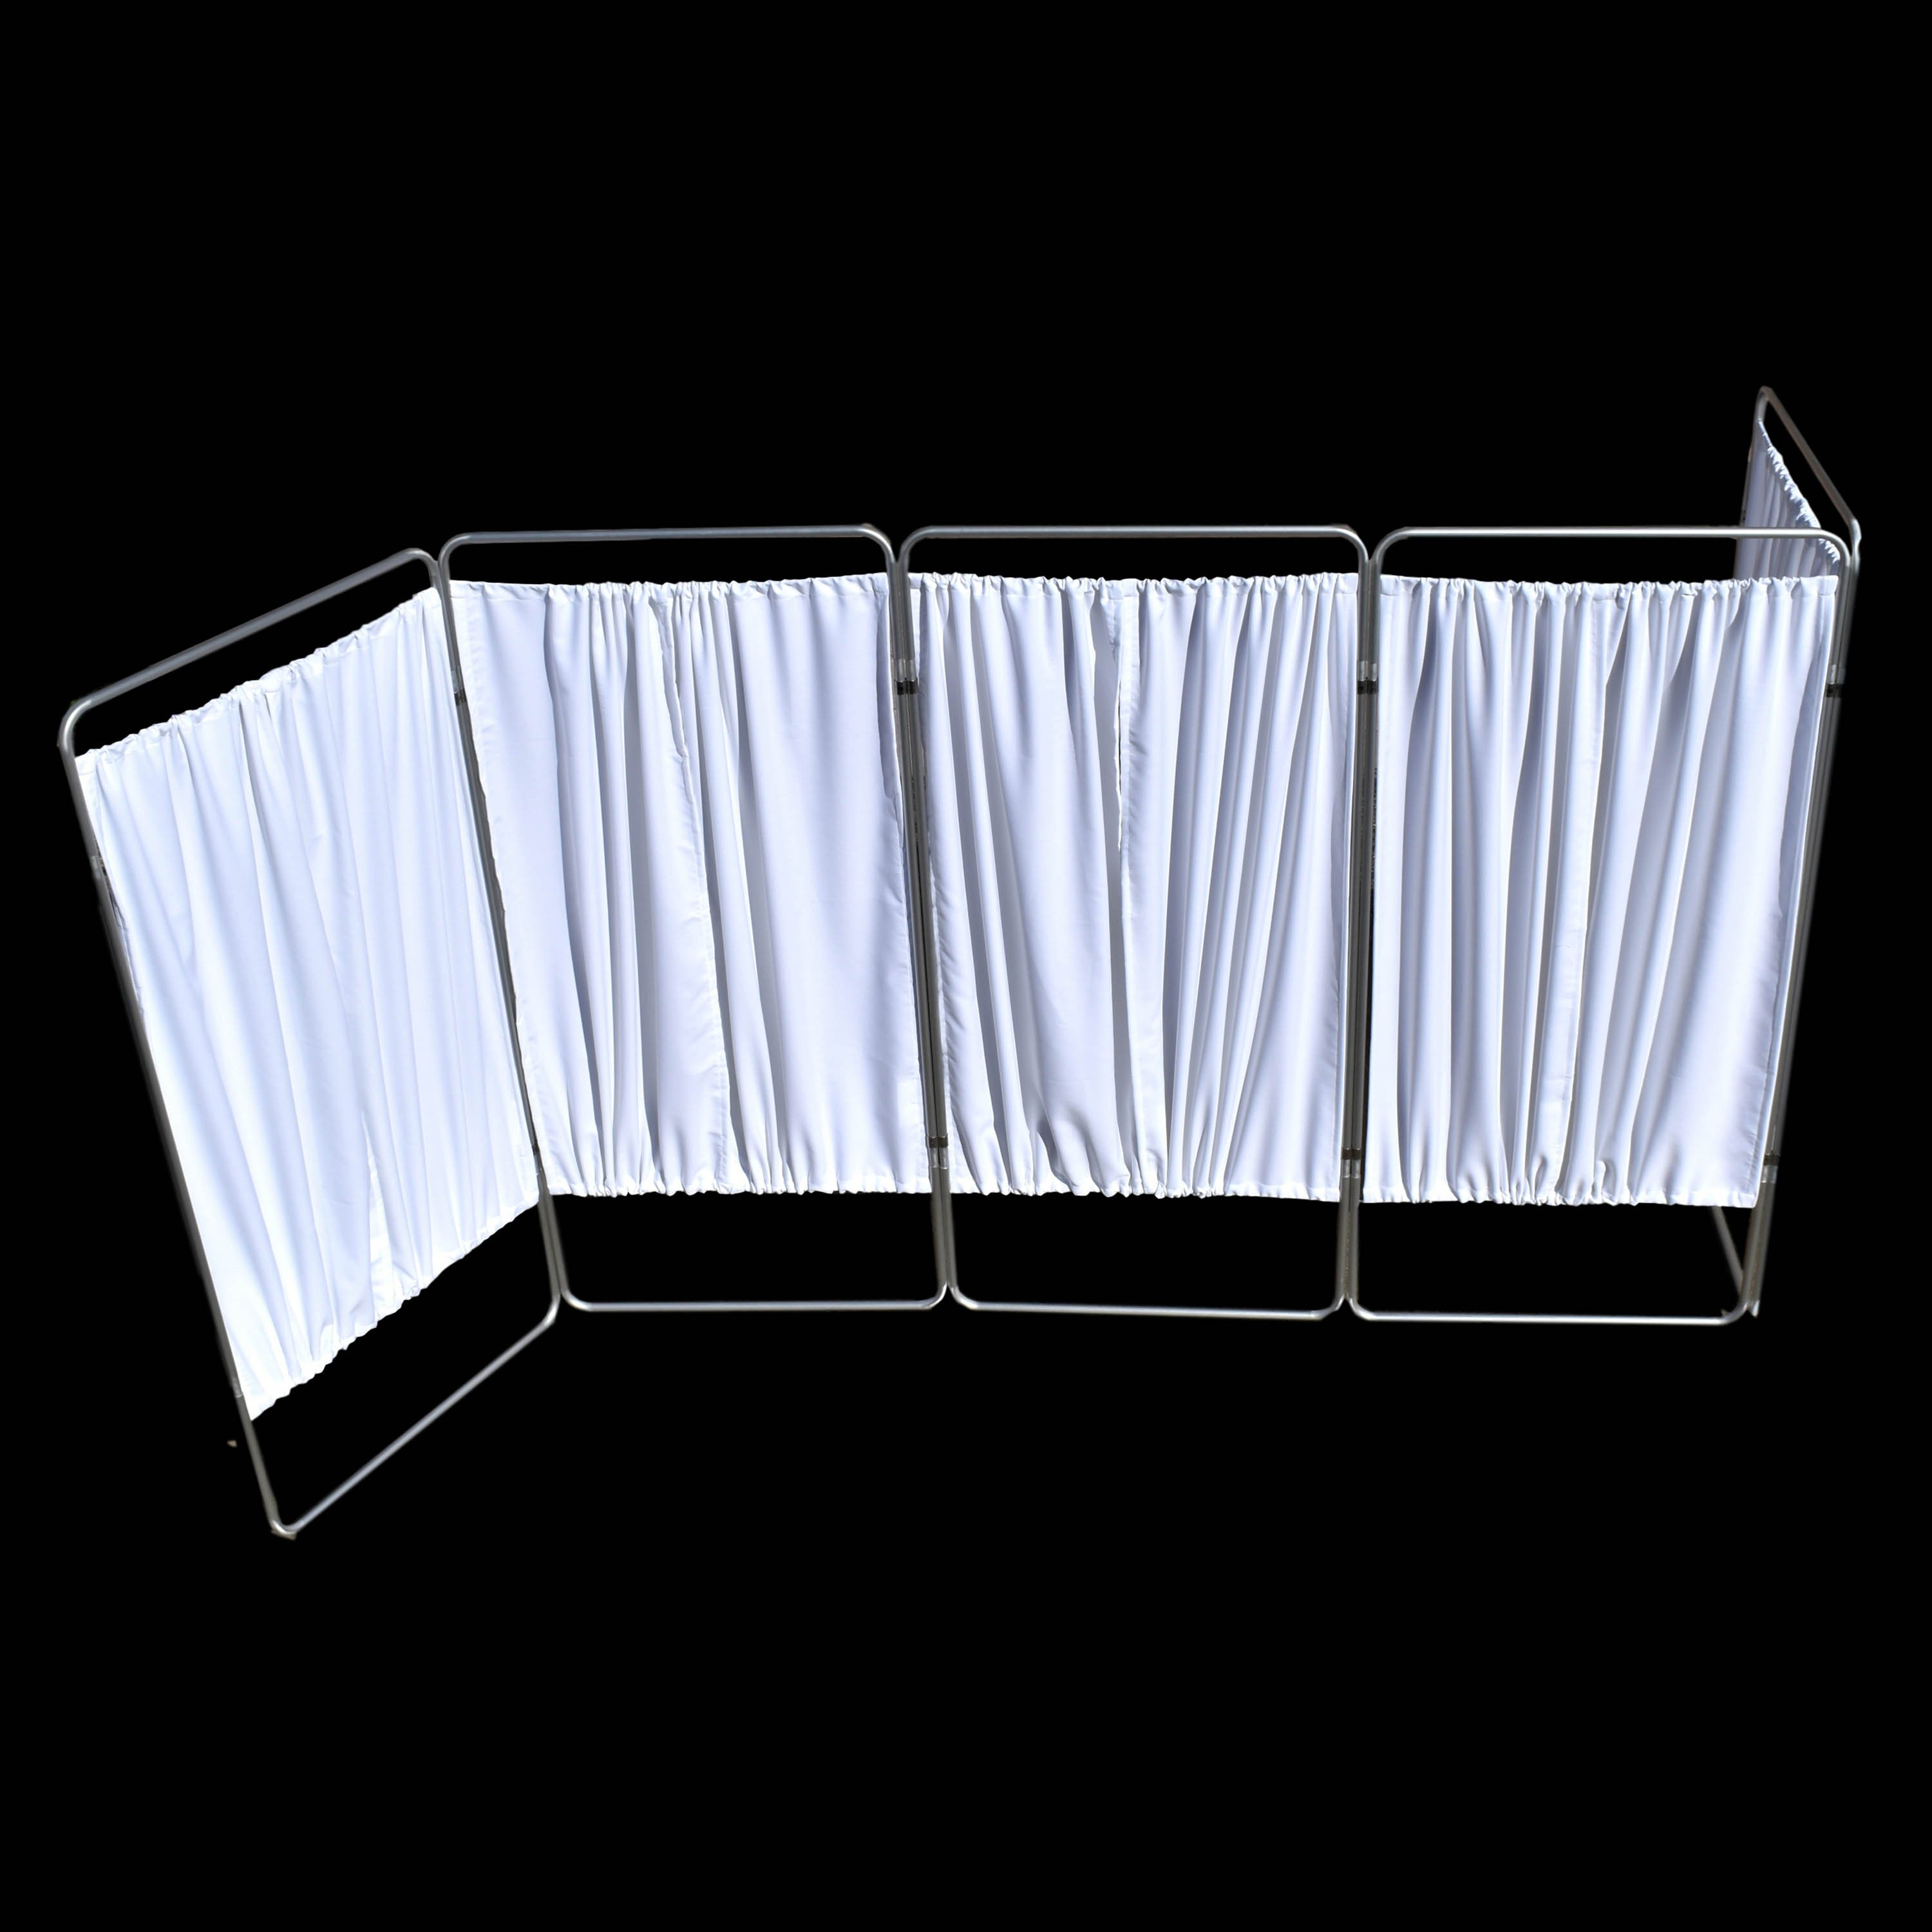 King Economy Privacy Screen with U-Hinge and White Vinyl Panel - 5 Section